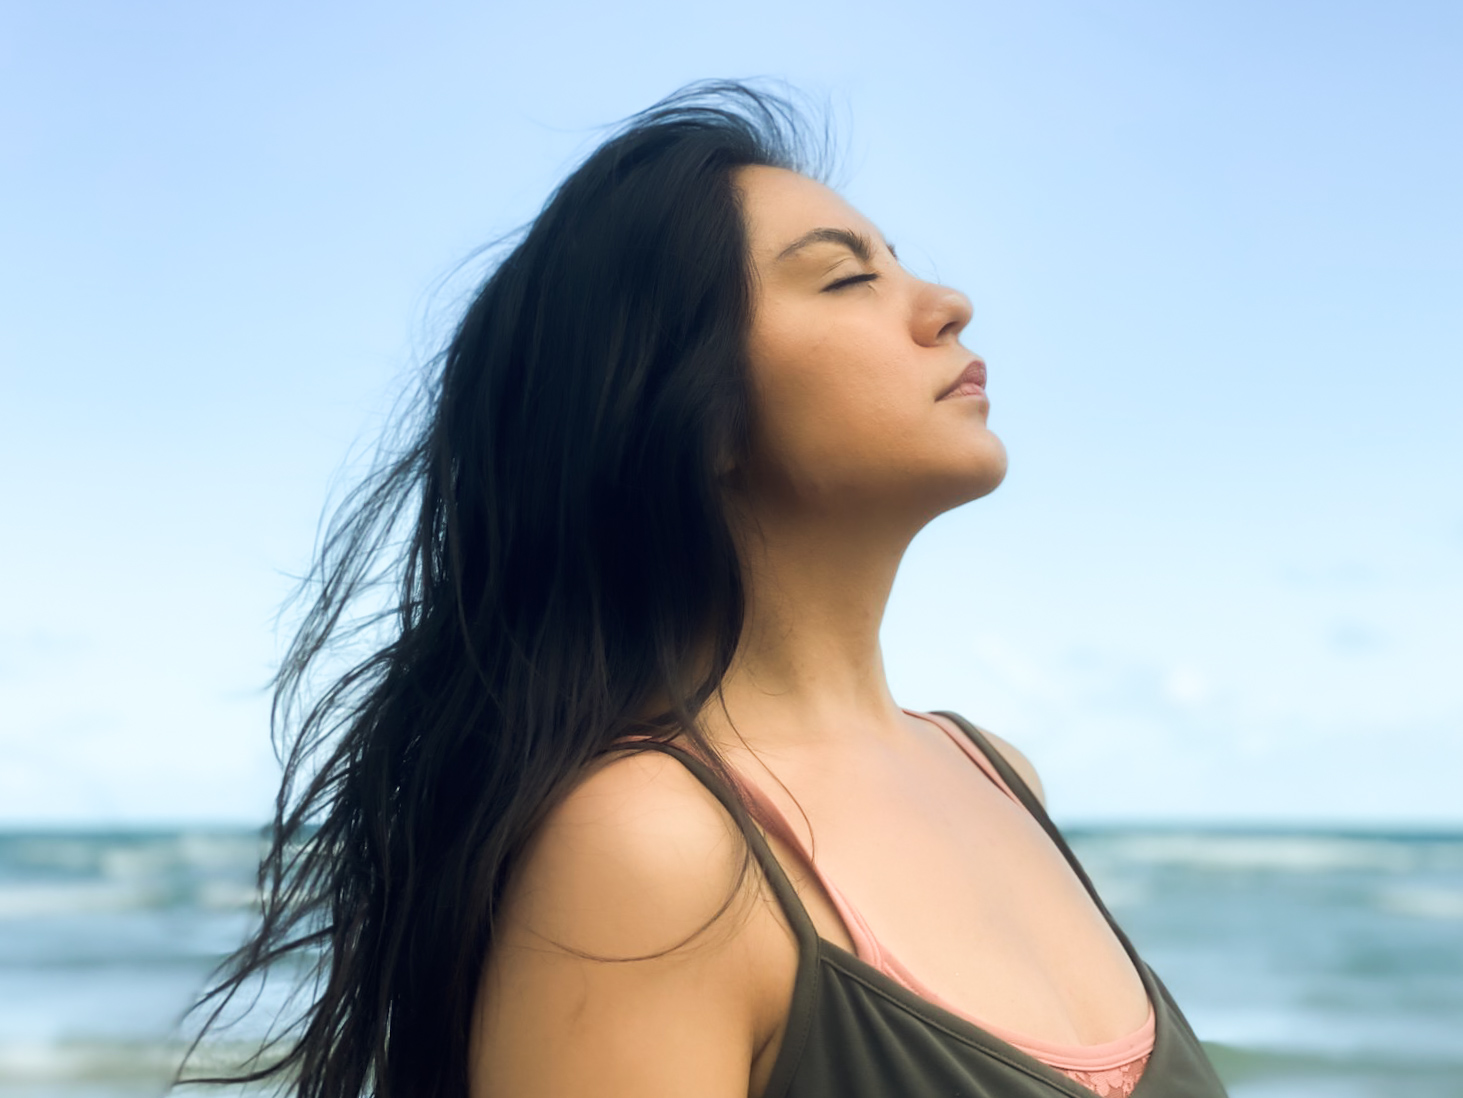 Writer, Victoria Alondra stands with her right shoulder at the forefront of the picture. Her chin is slightly raised and she has long dark wavy hair that sits loose. The blurry background is of the sky and a body of water.